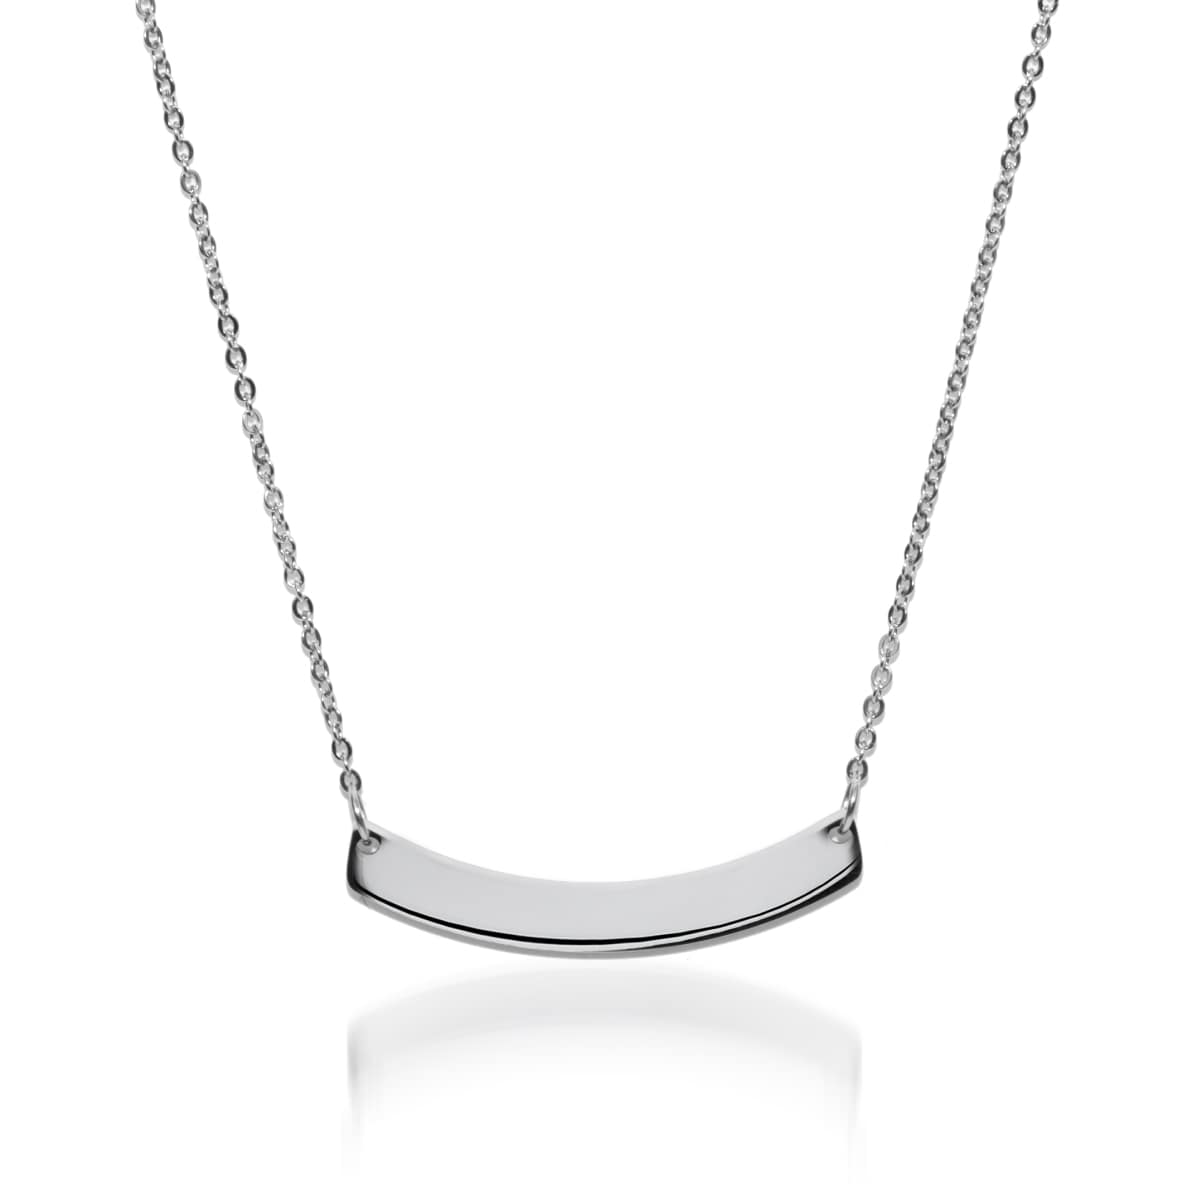 Curved Minimalist Bar | Silver | Necklace